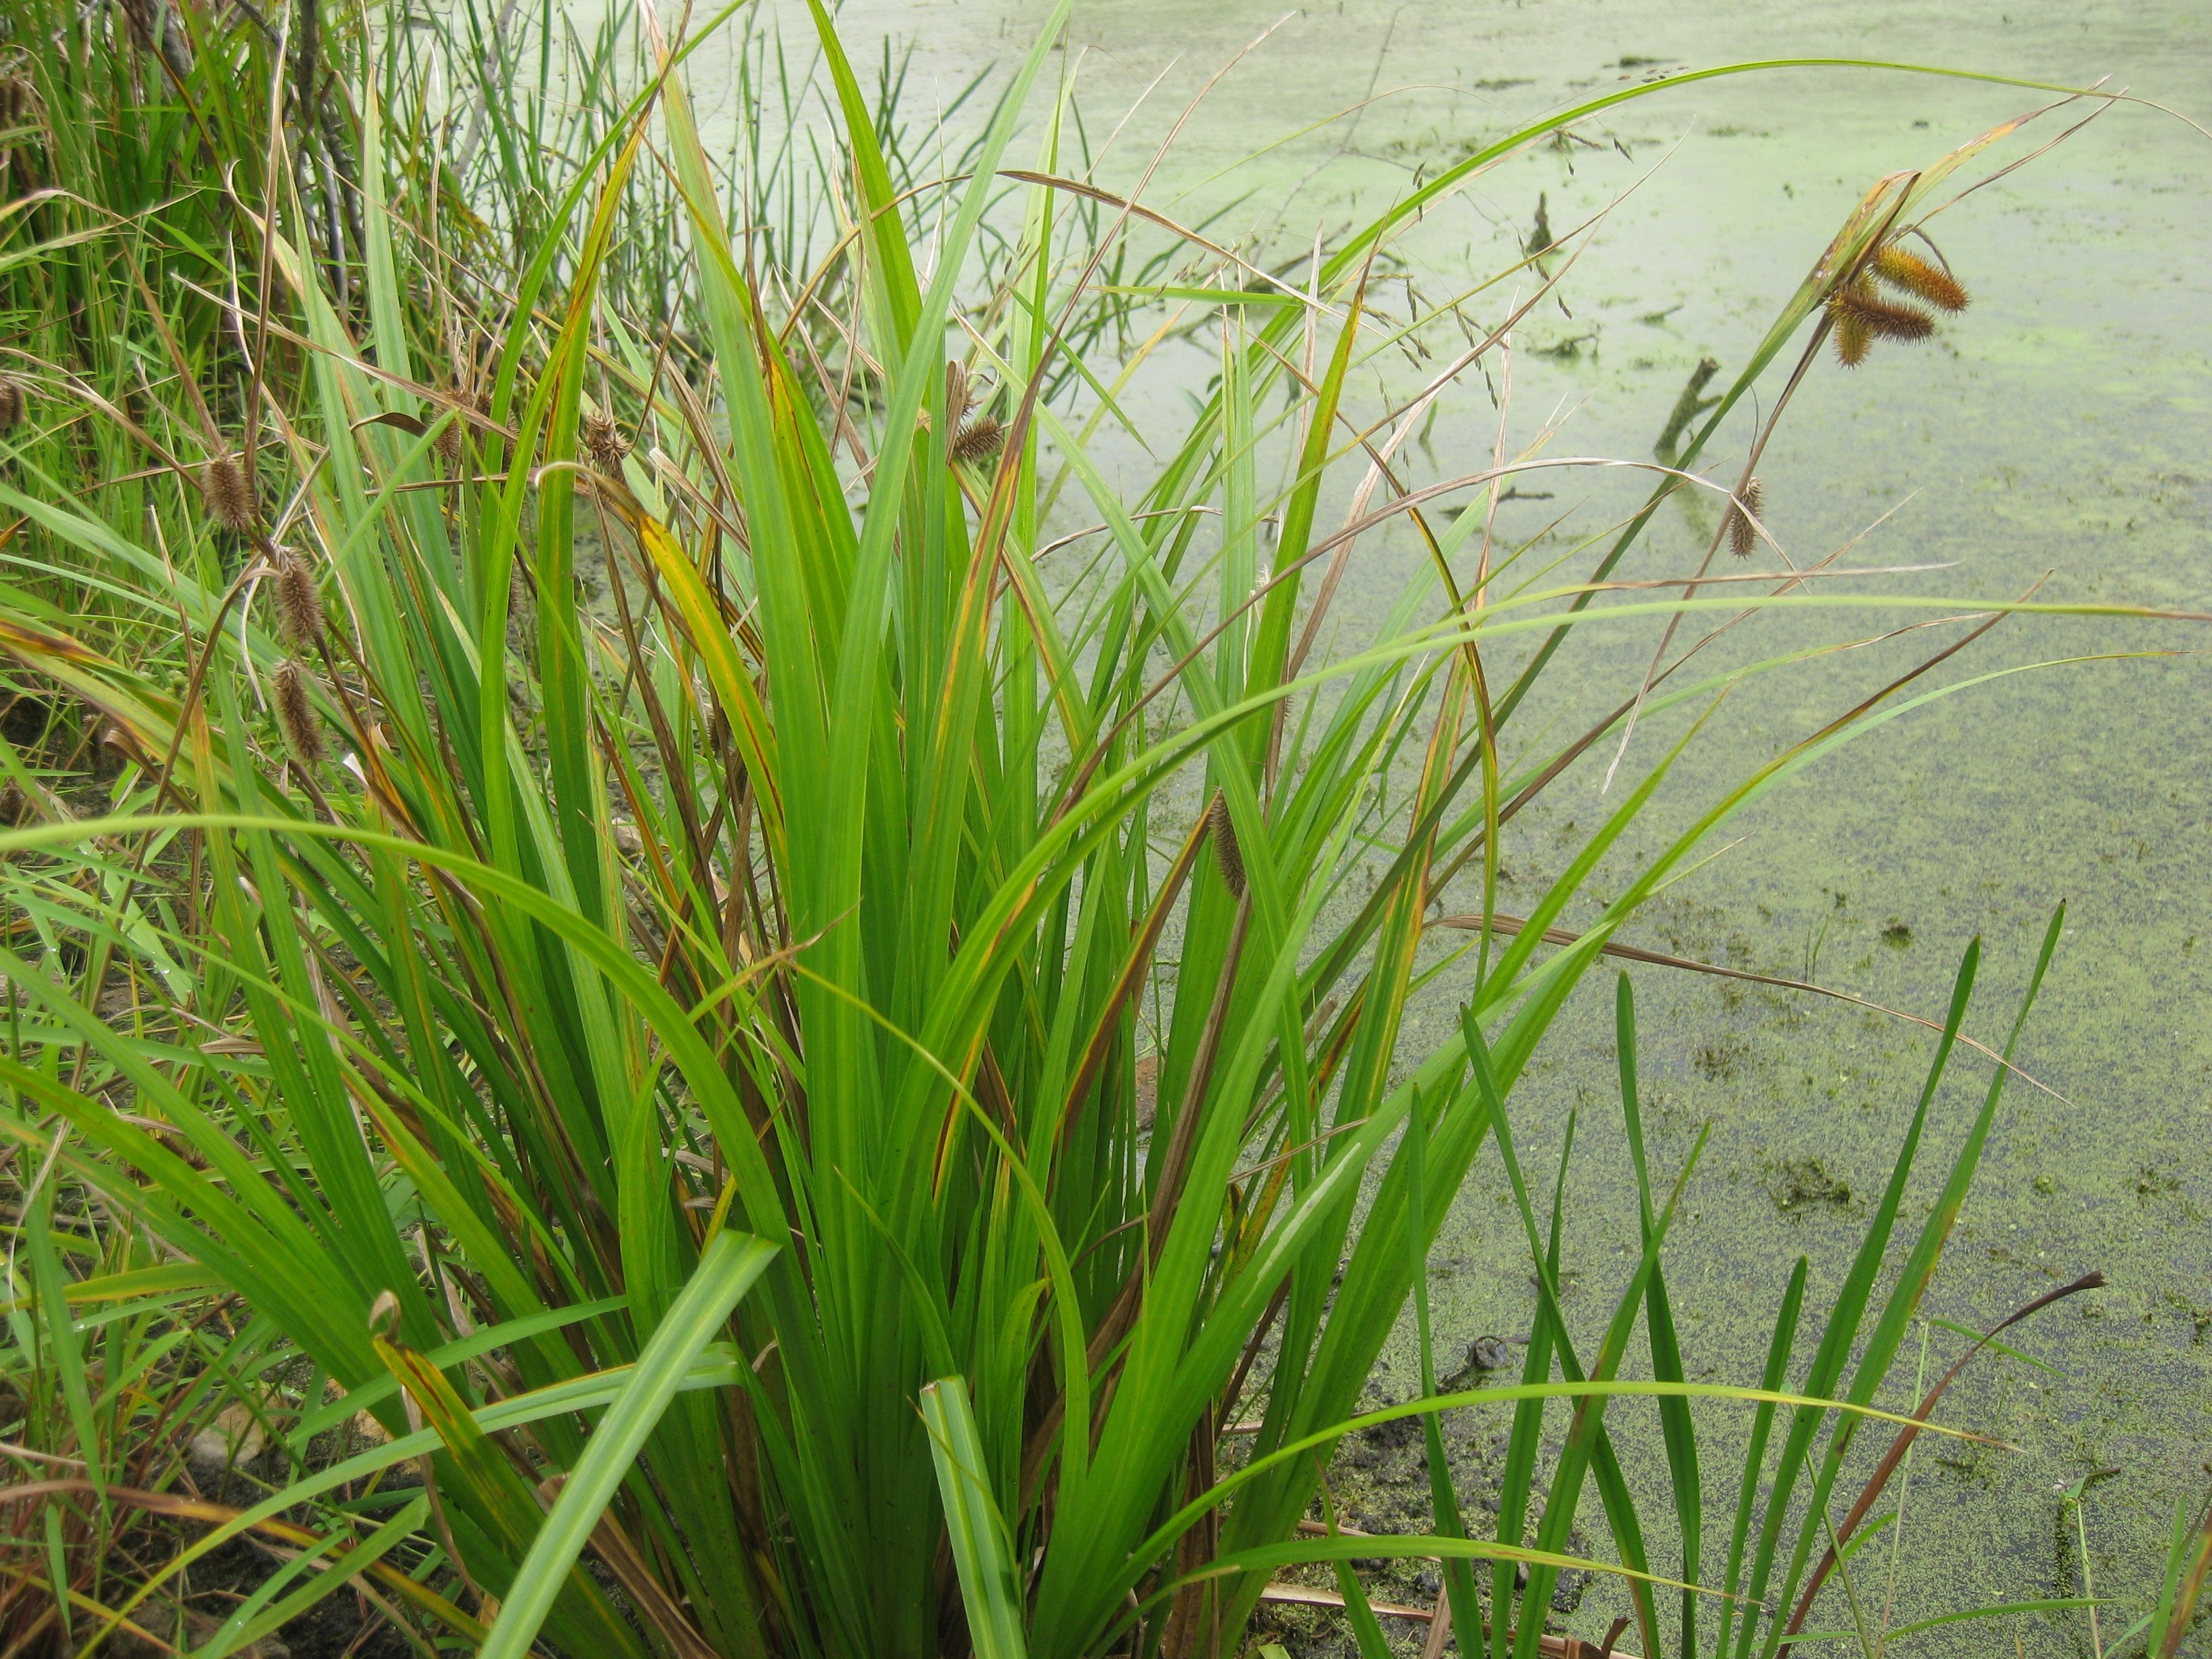 Carex Comosa Bearded Sedge Obl This Clump Forming Sedge 2 4 Provides Food And Cover For Many Wetland Birds Including Virgin Wetland Native Plants Shrubs